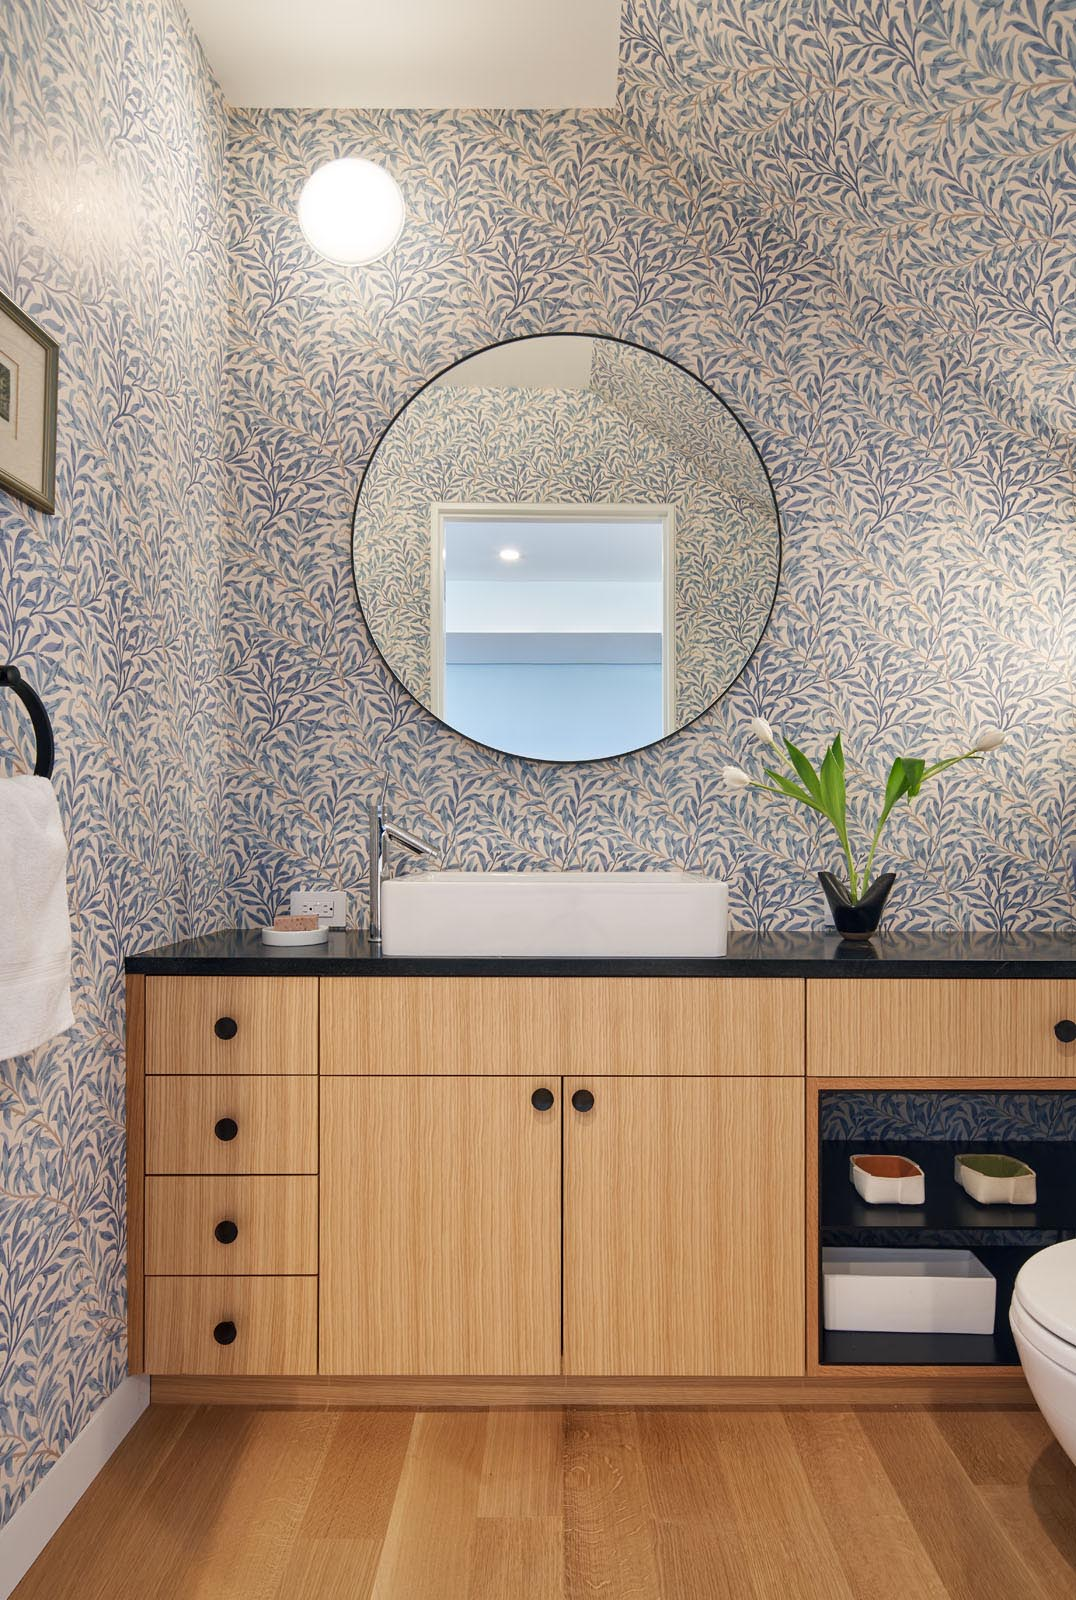 In this modern bathroom, the walls are covered in a wallpaper with a leaf design, while a round mirror hangs above a wood vanity with a black countertop.